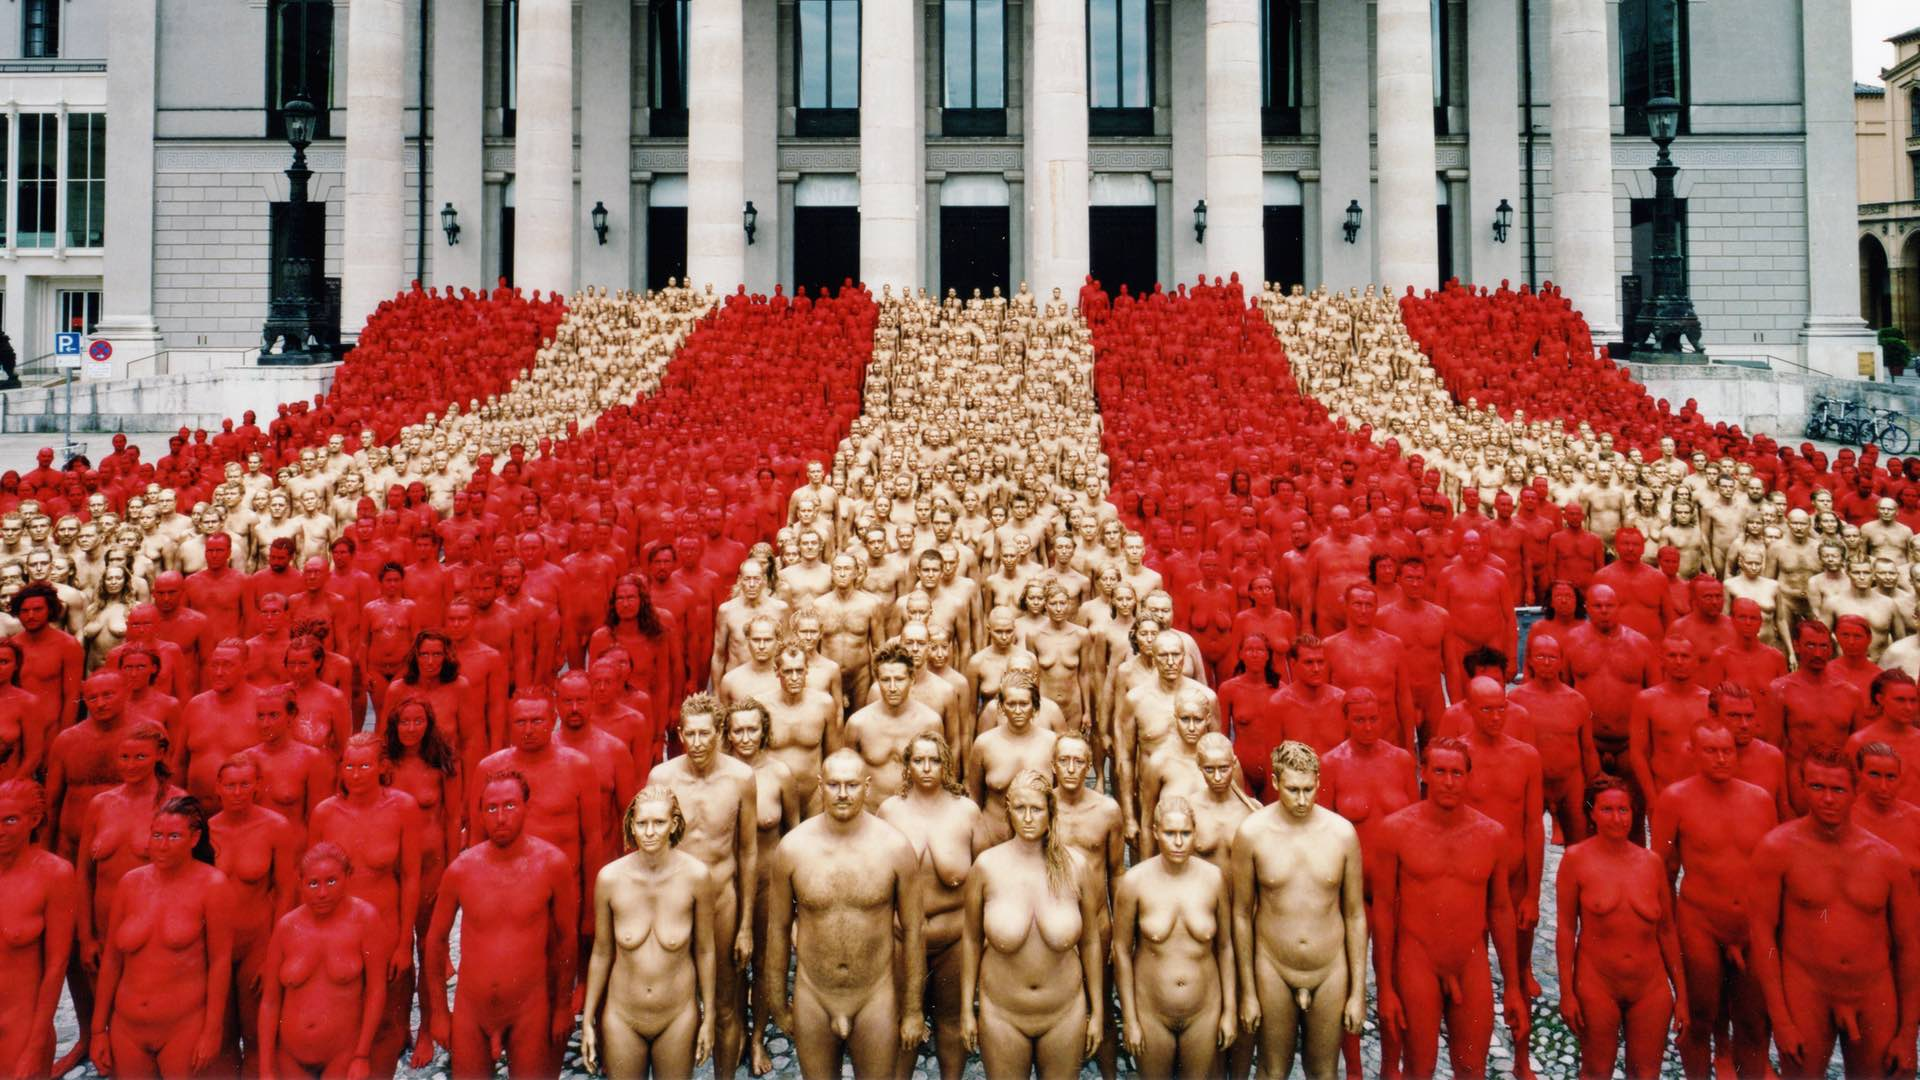 All around me are naked people, naked people, naked people